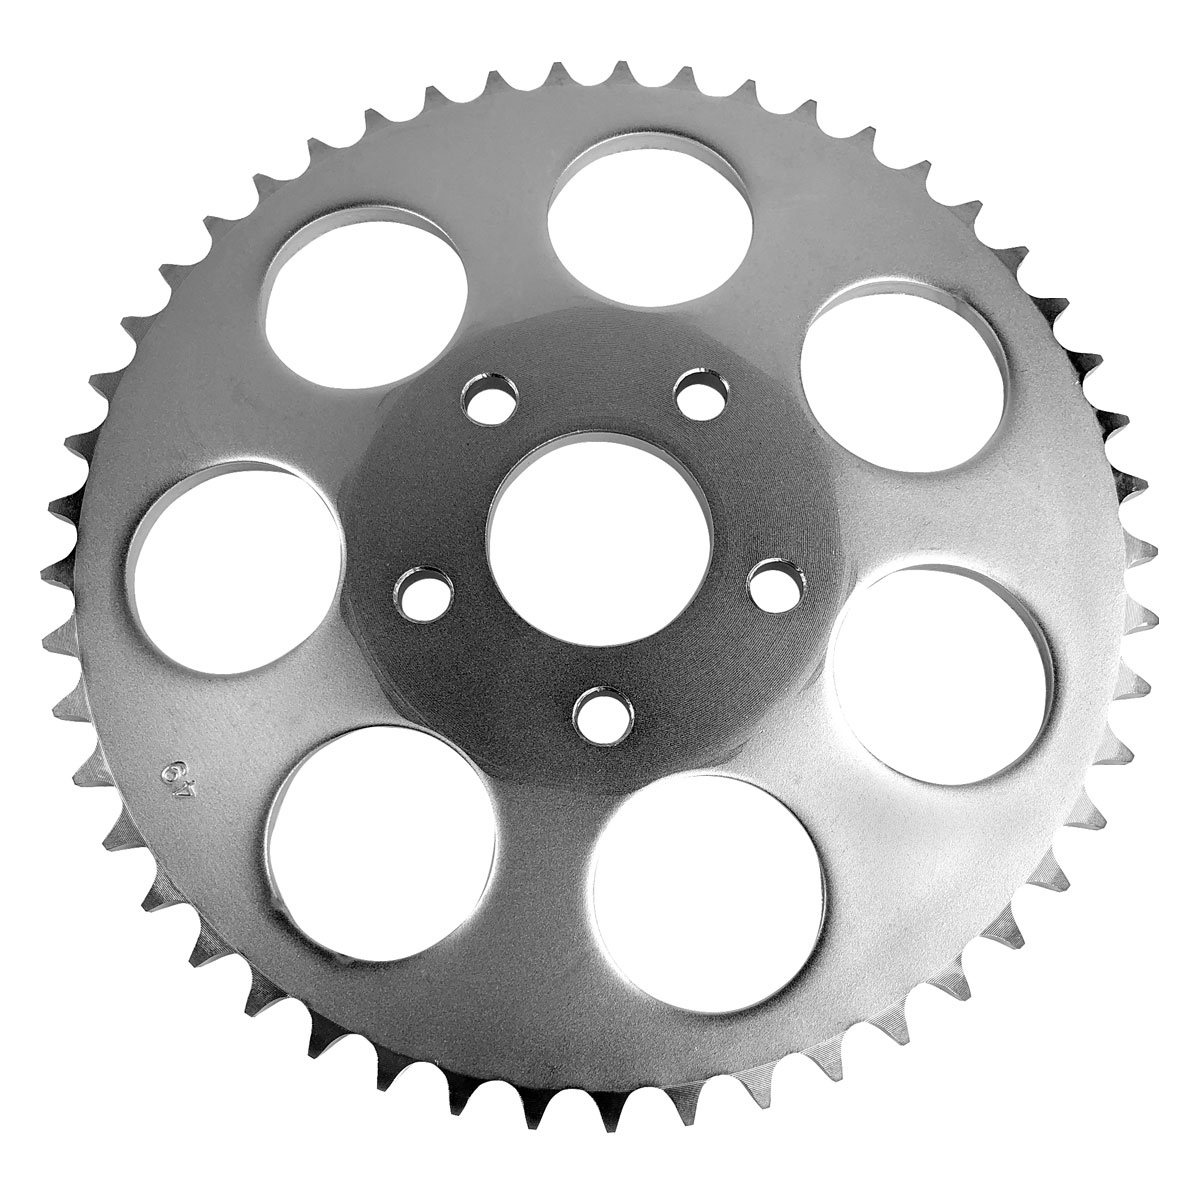 J&P Cycles® 49 Tooth Rear Chain Drive Sprocket